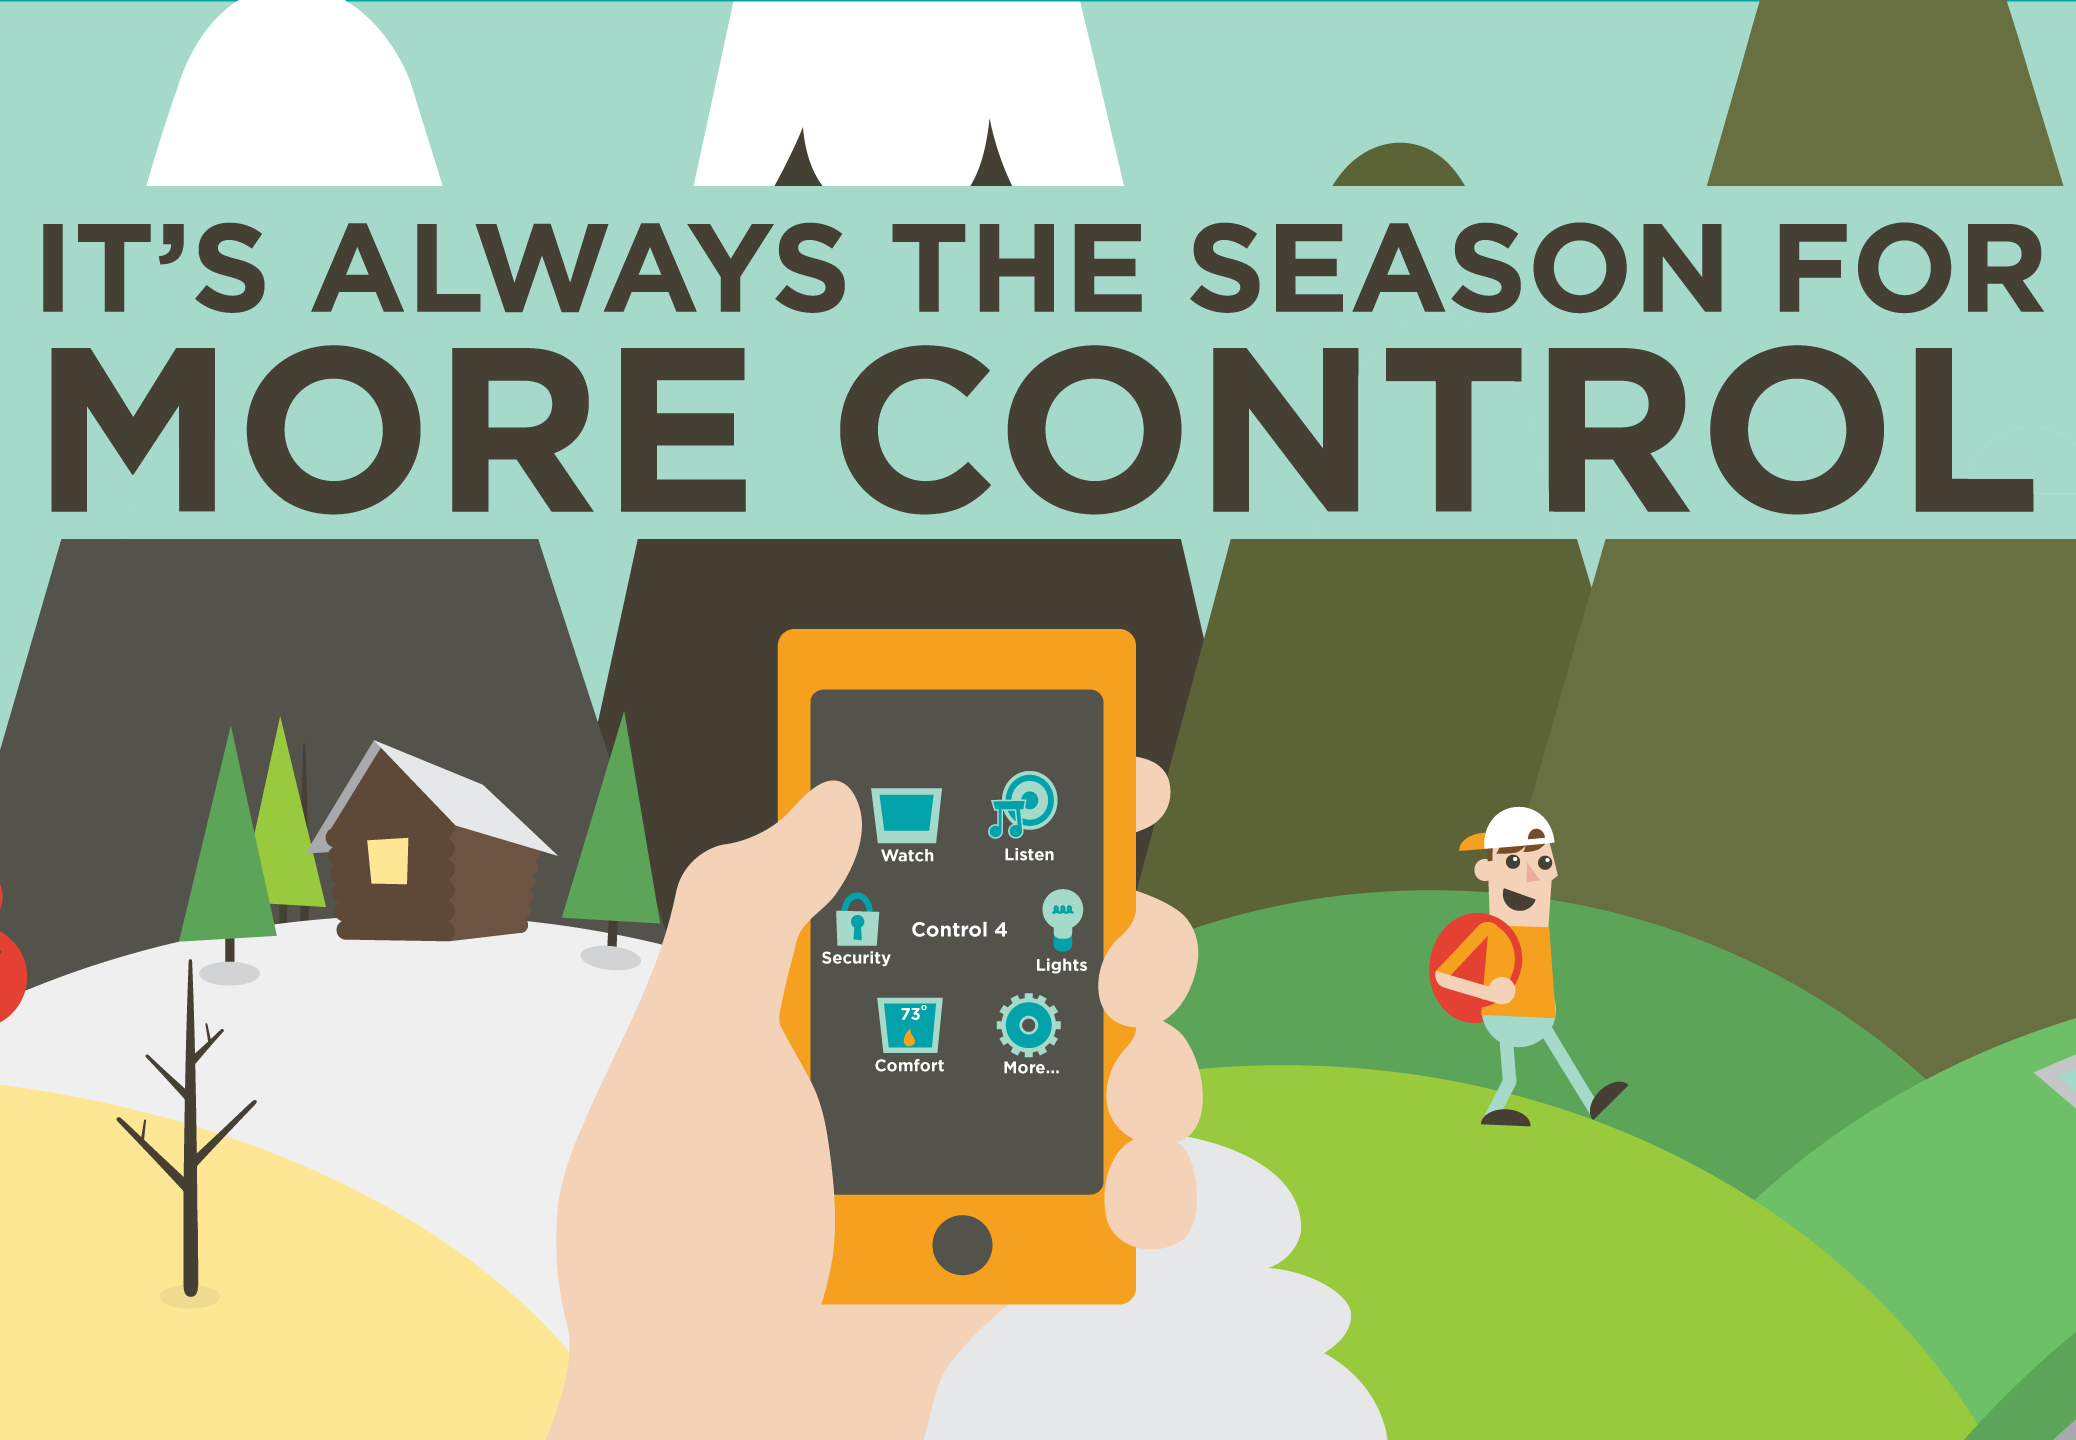 It's Always the Season for More Control: for fun, seasons, smart home,